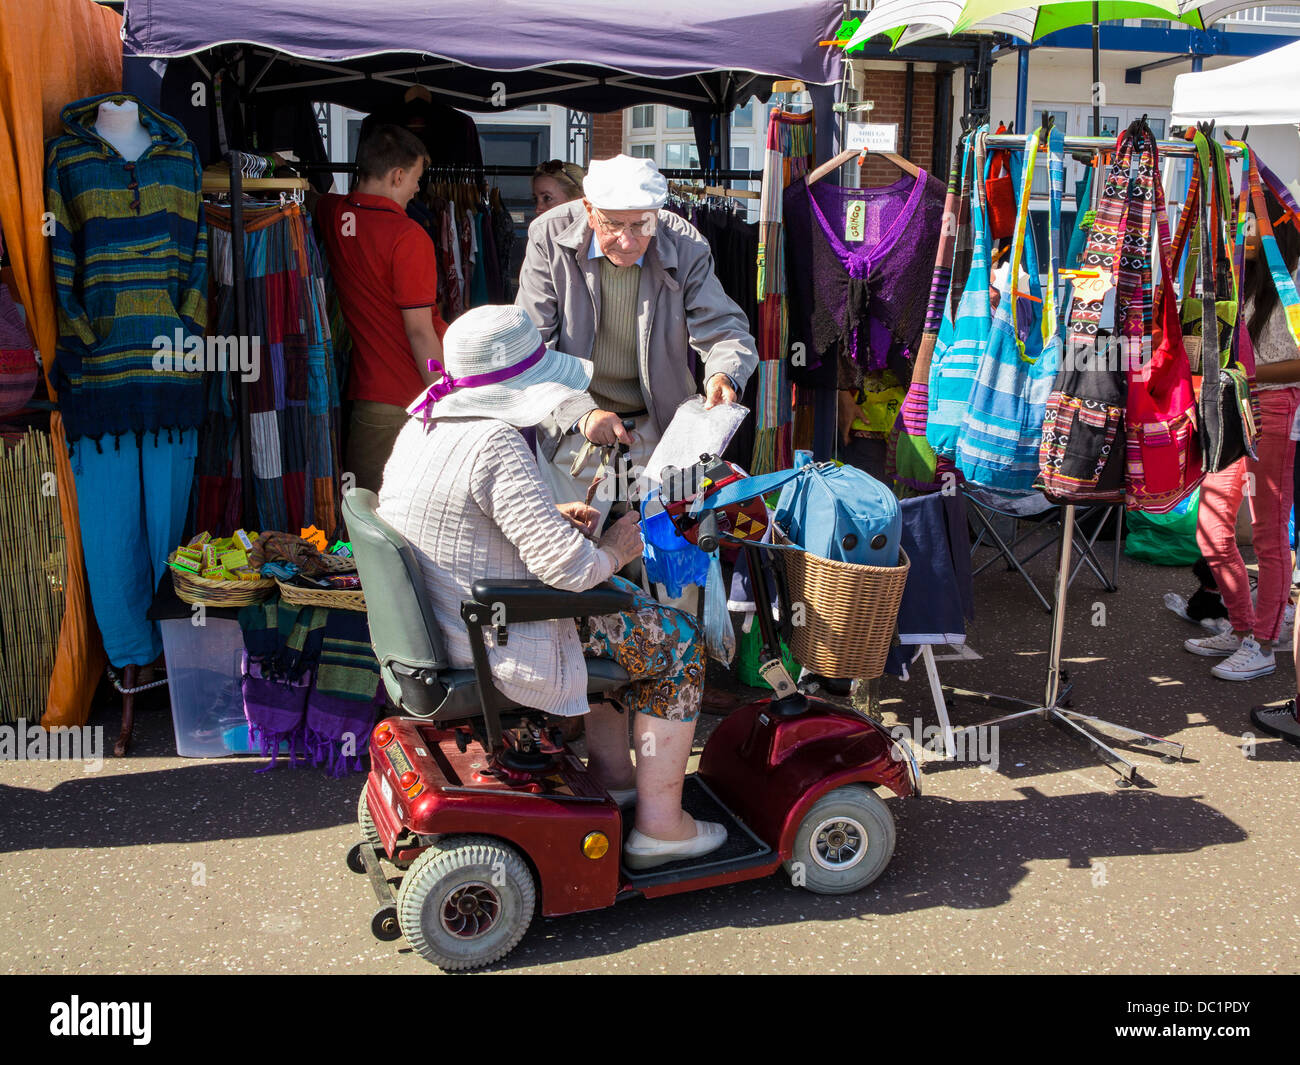 Elderly couple shopping with mobility scooter at Sidmouth, Devon, England - Stock Image